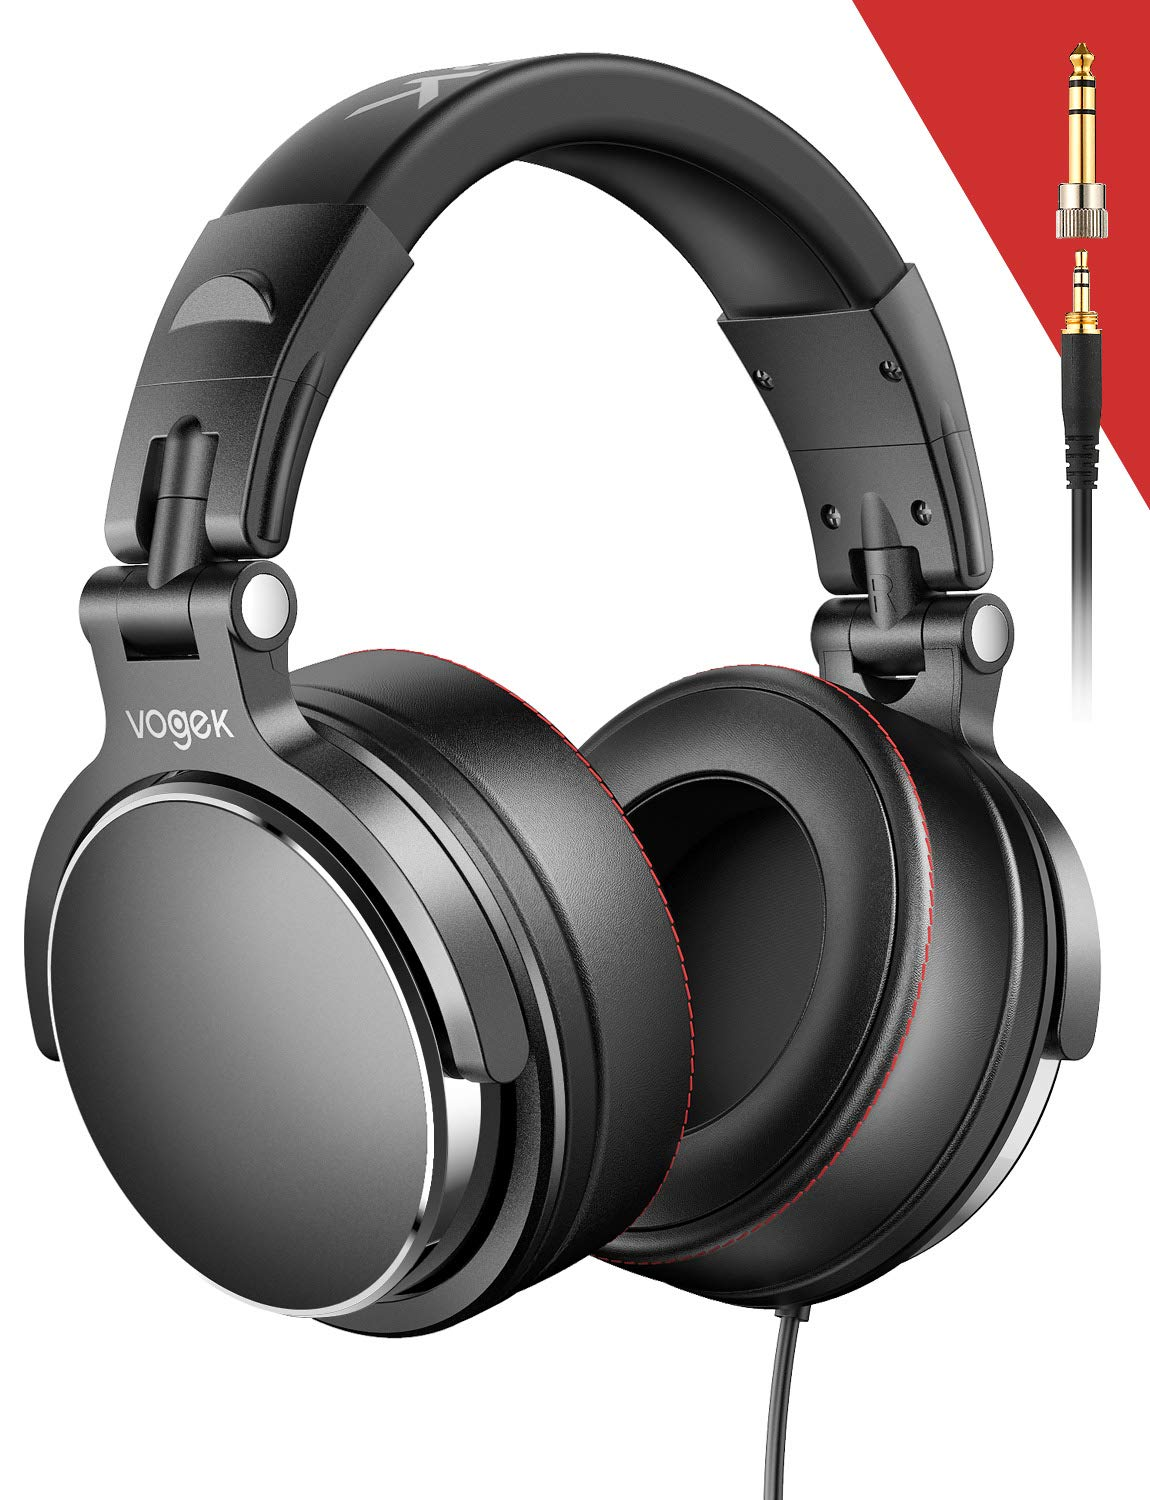 Over-Ear DJ Headphones, Prefessional Studio Monitor Mixing DJ Headset with Stereo Sound for Electric Drum Piano Guitar AMP, 50mm Neodymium Drivers by Sopownic